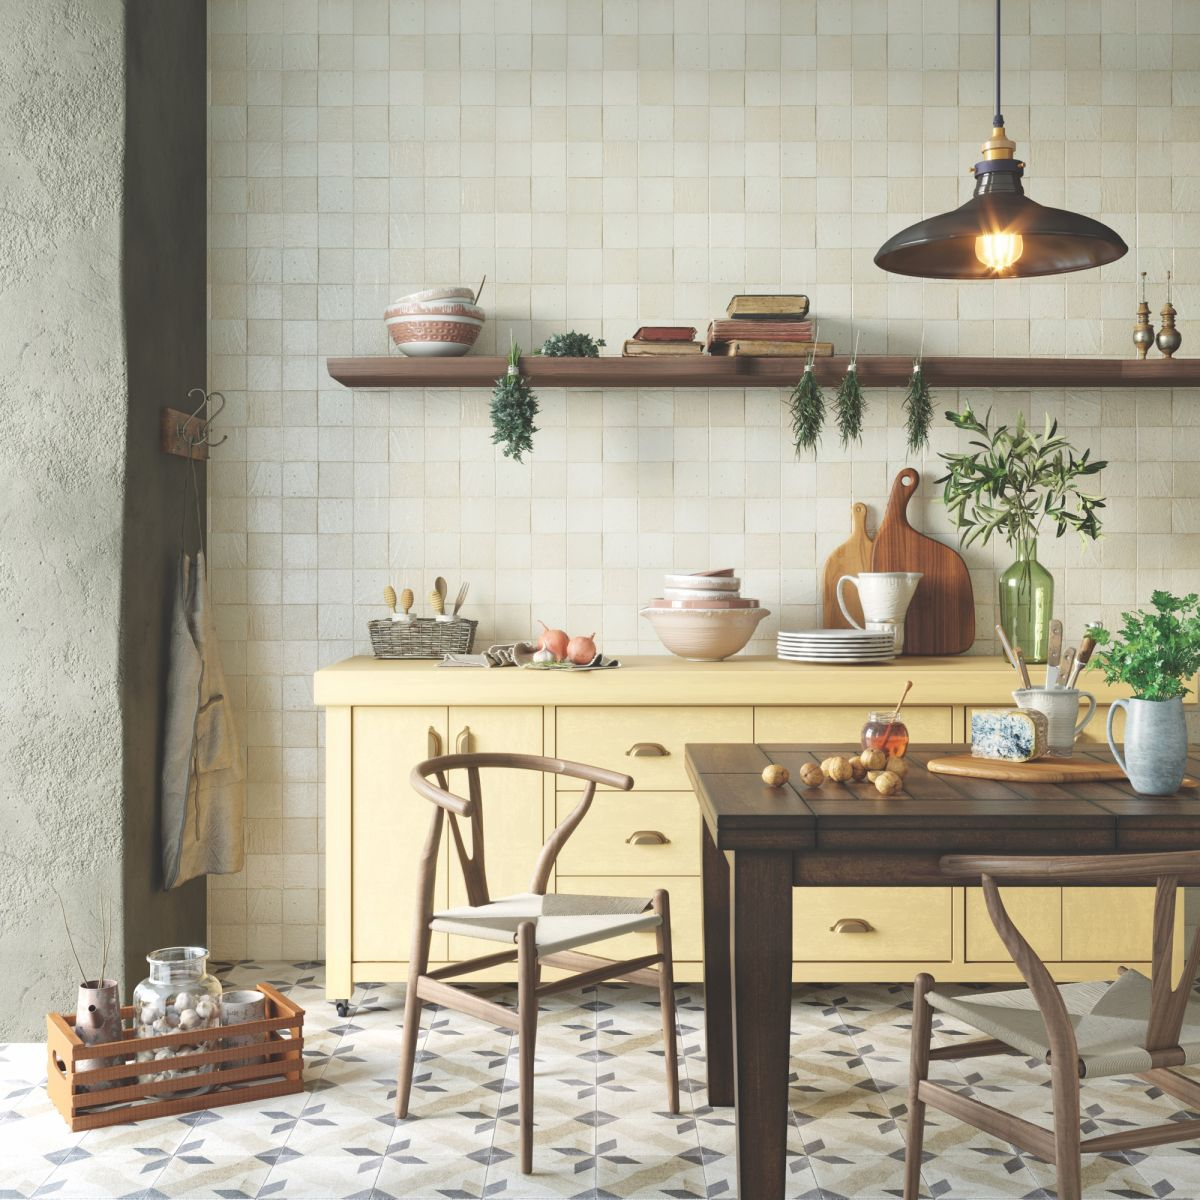 11 costly mistakes to avoid when buying tiles – according to experts